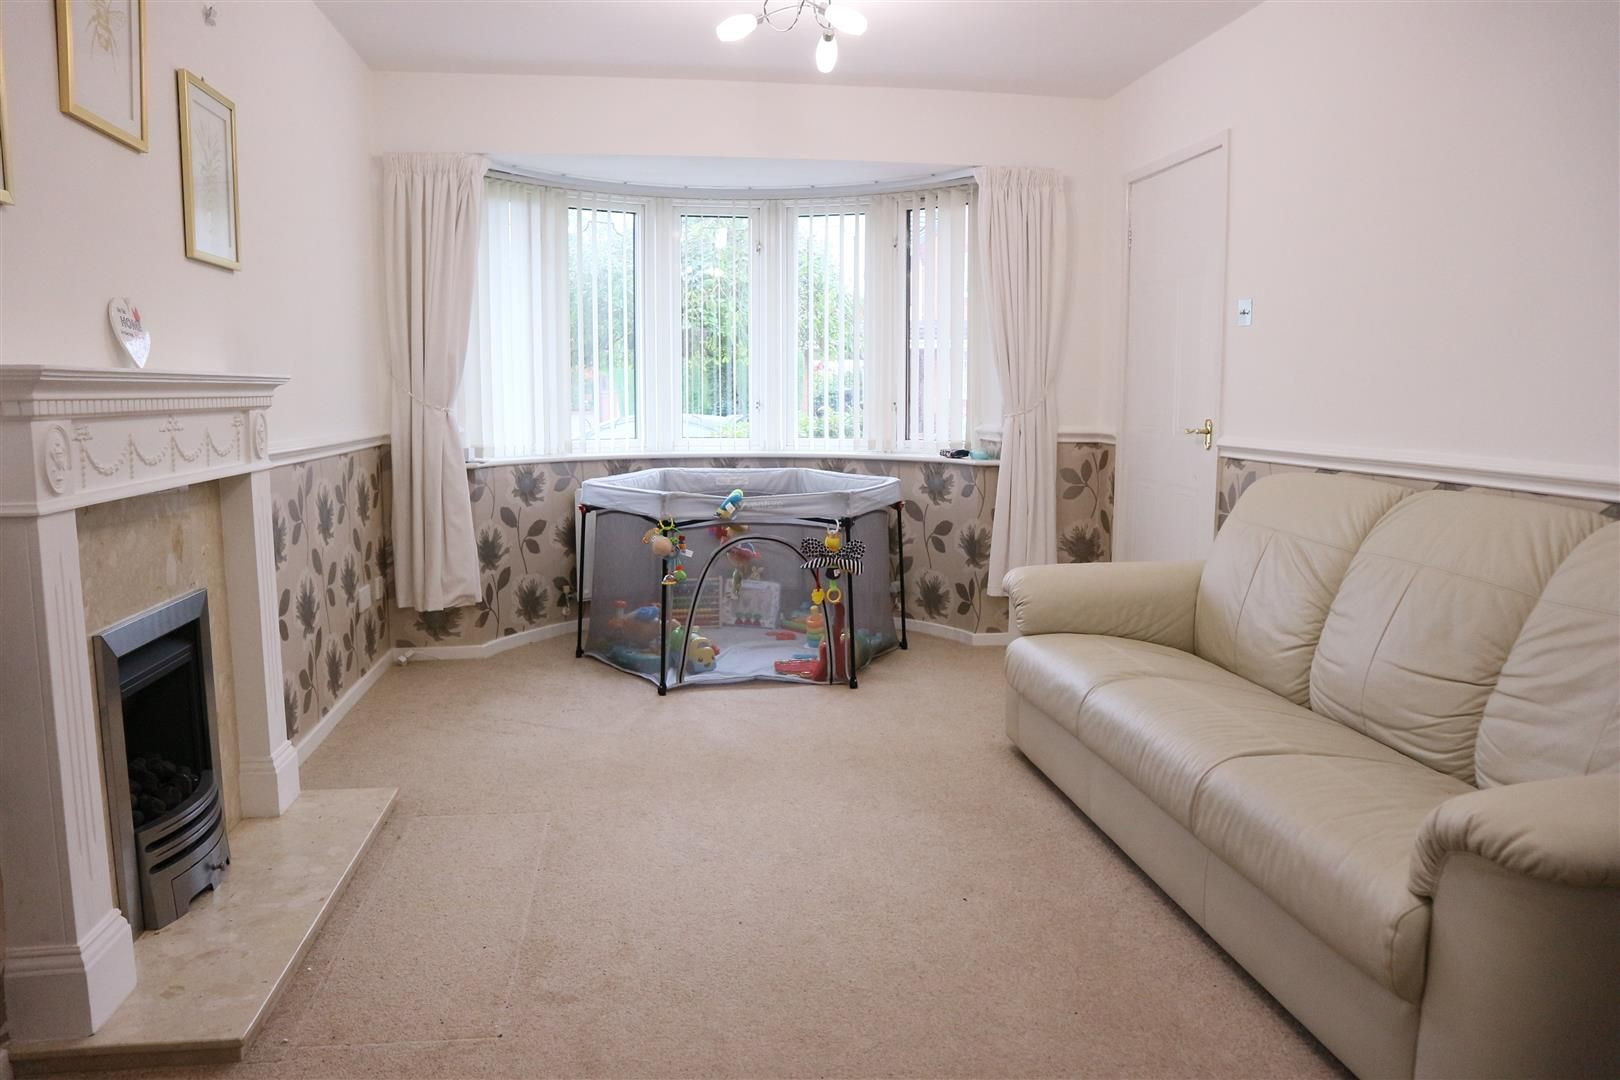 4 bed detached for sale, DY1